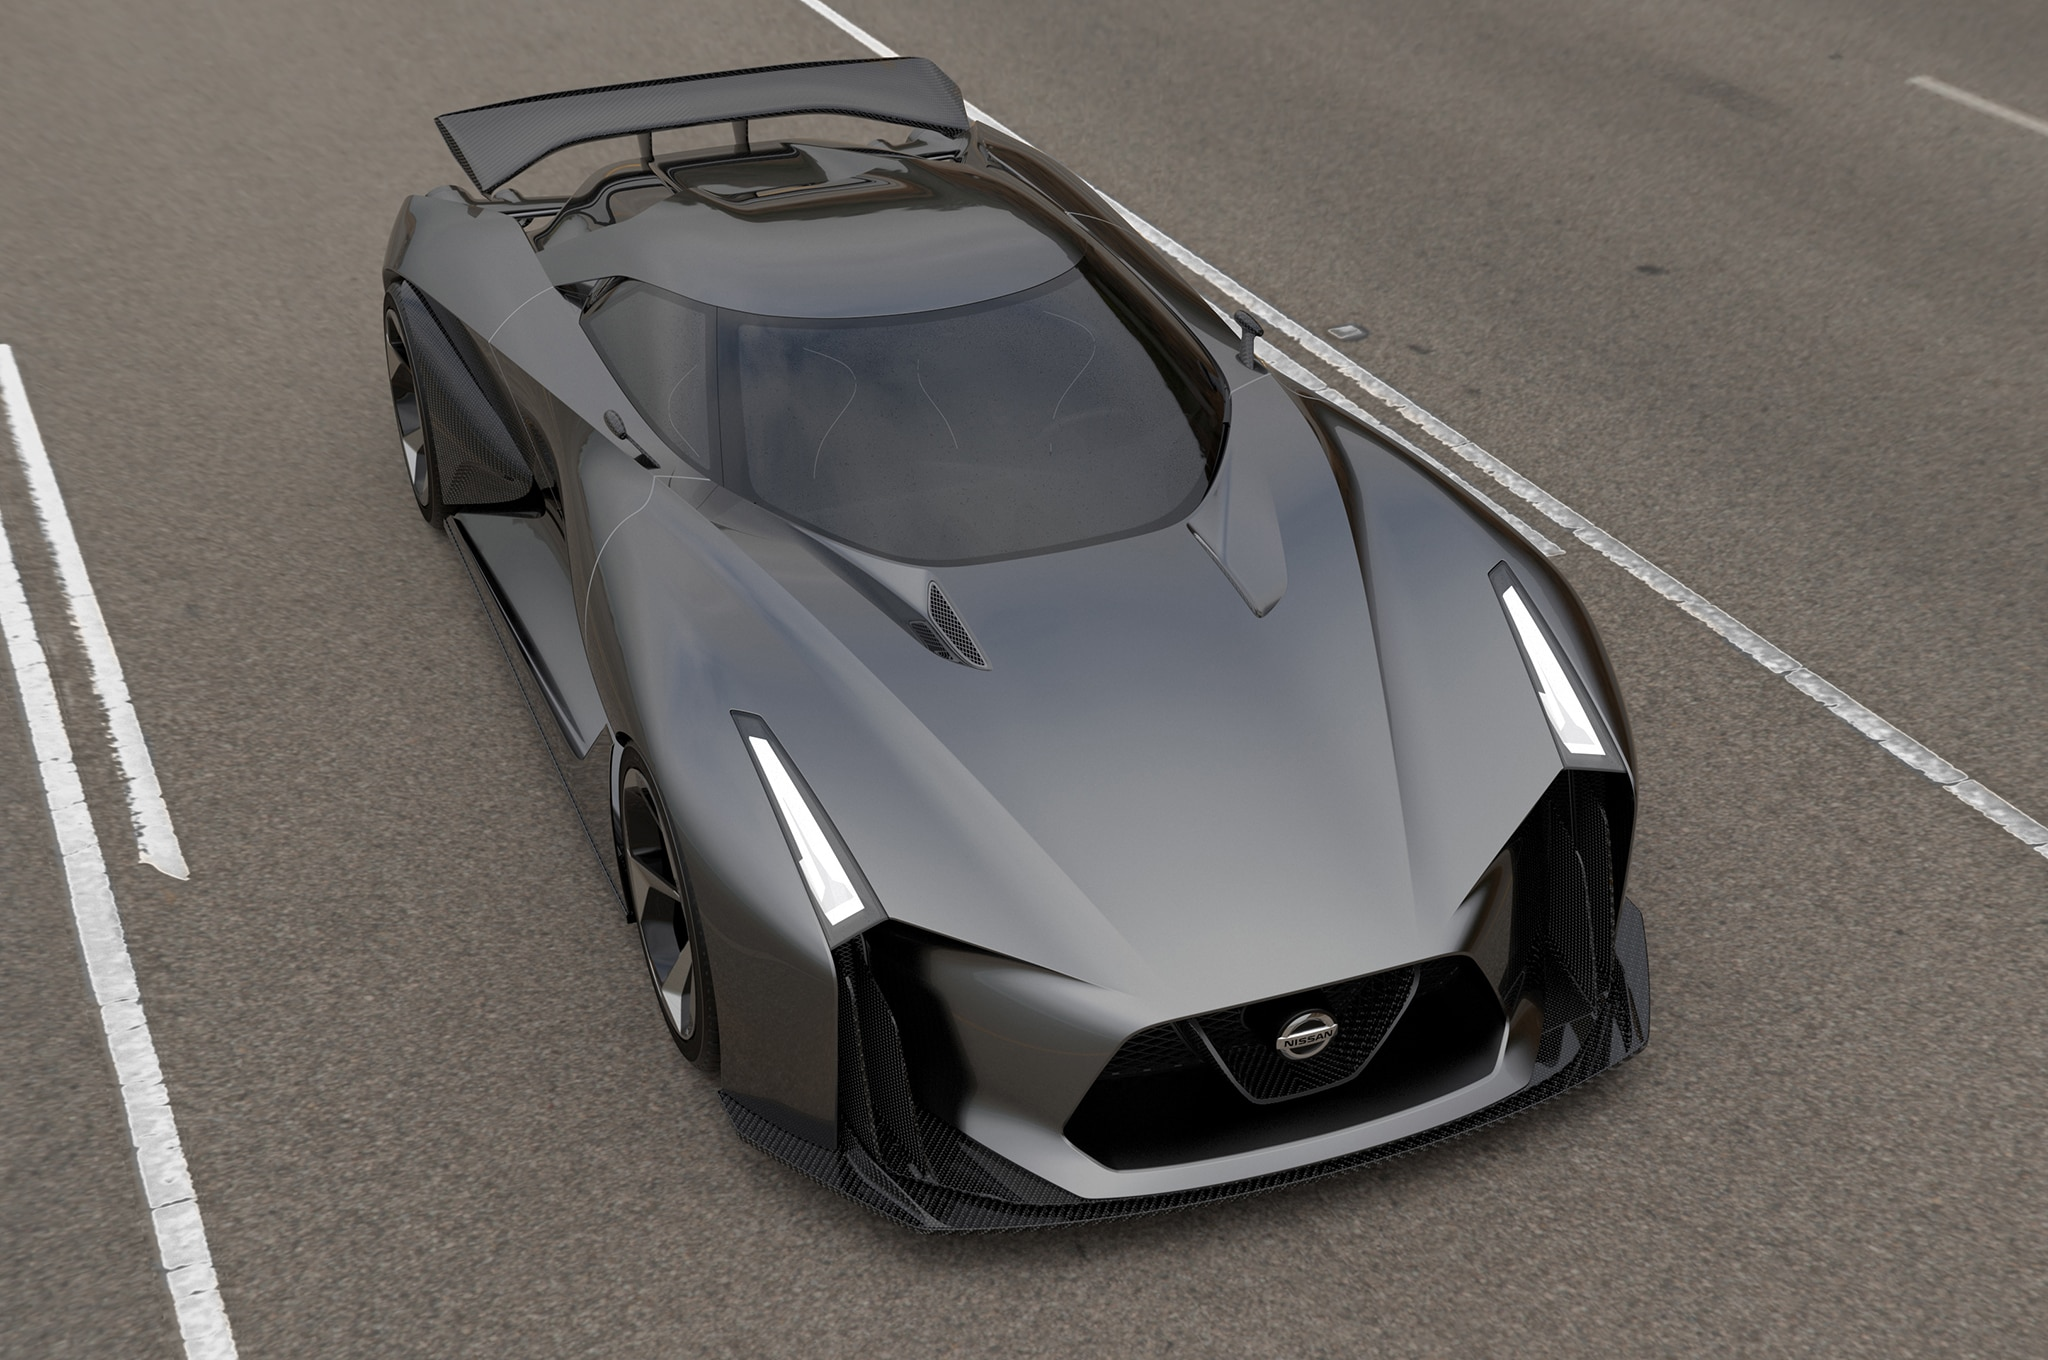 Nissan Concept 2020 Vision Gt Front Three Quarter Above1